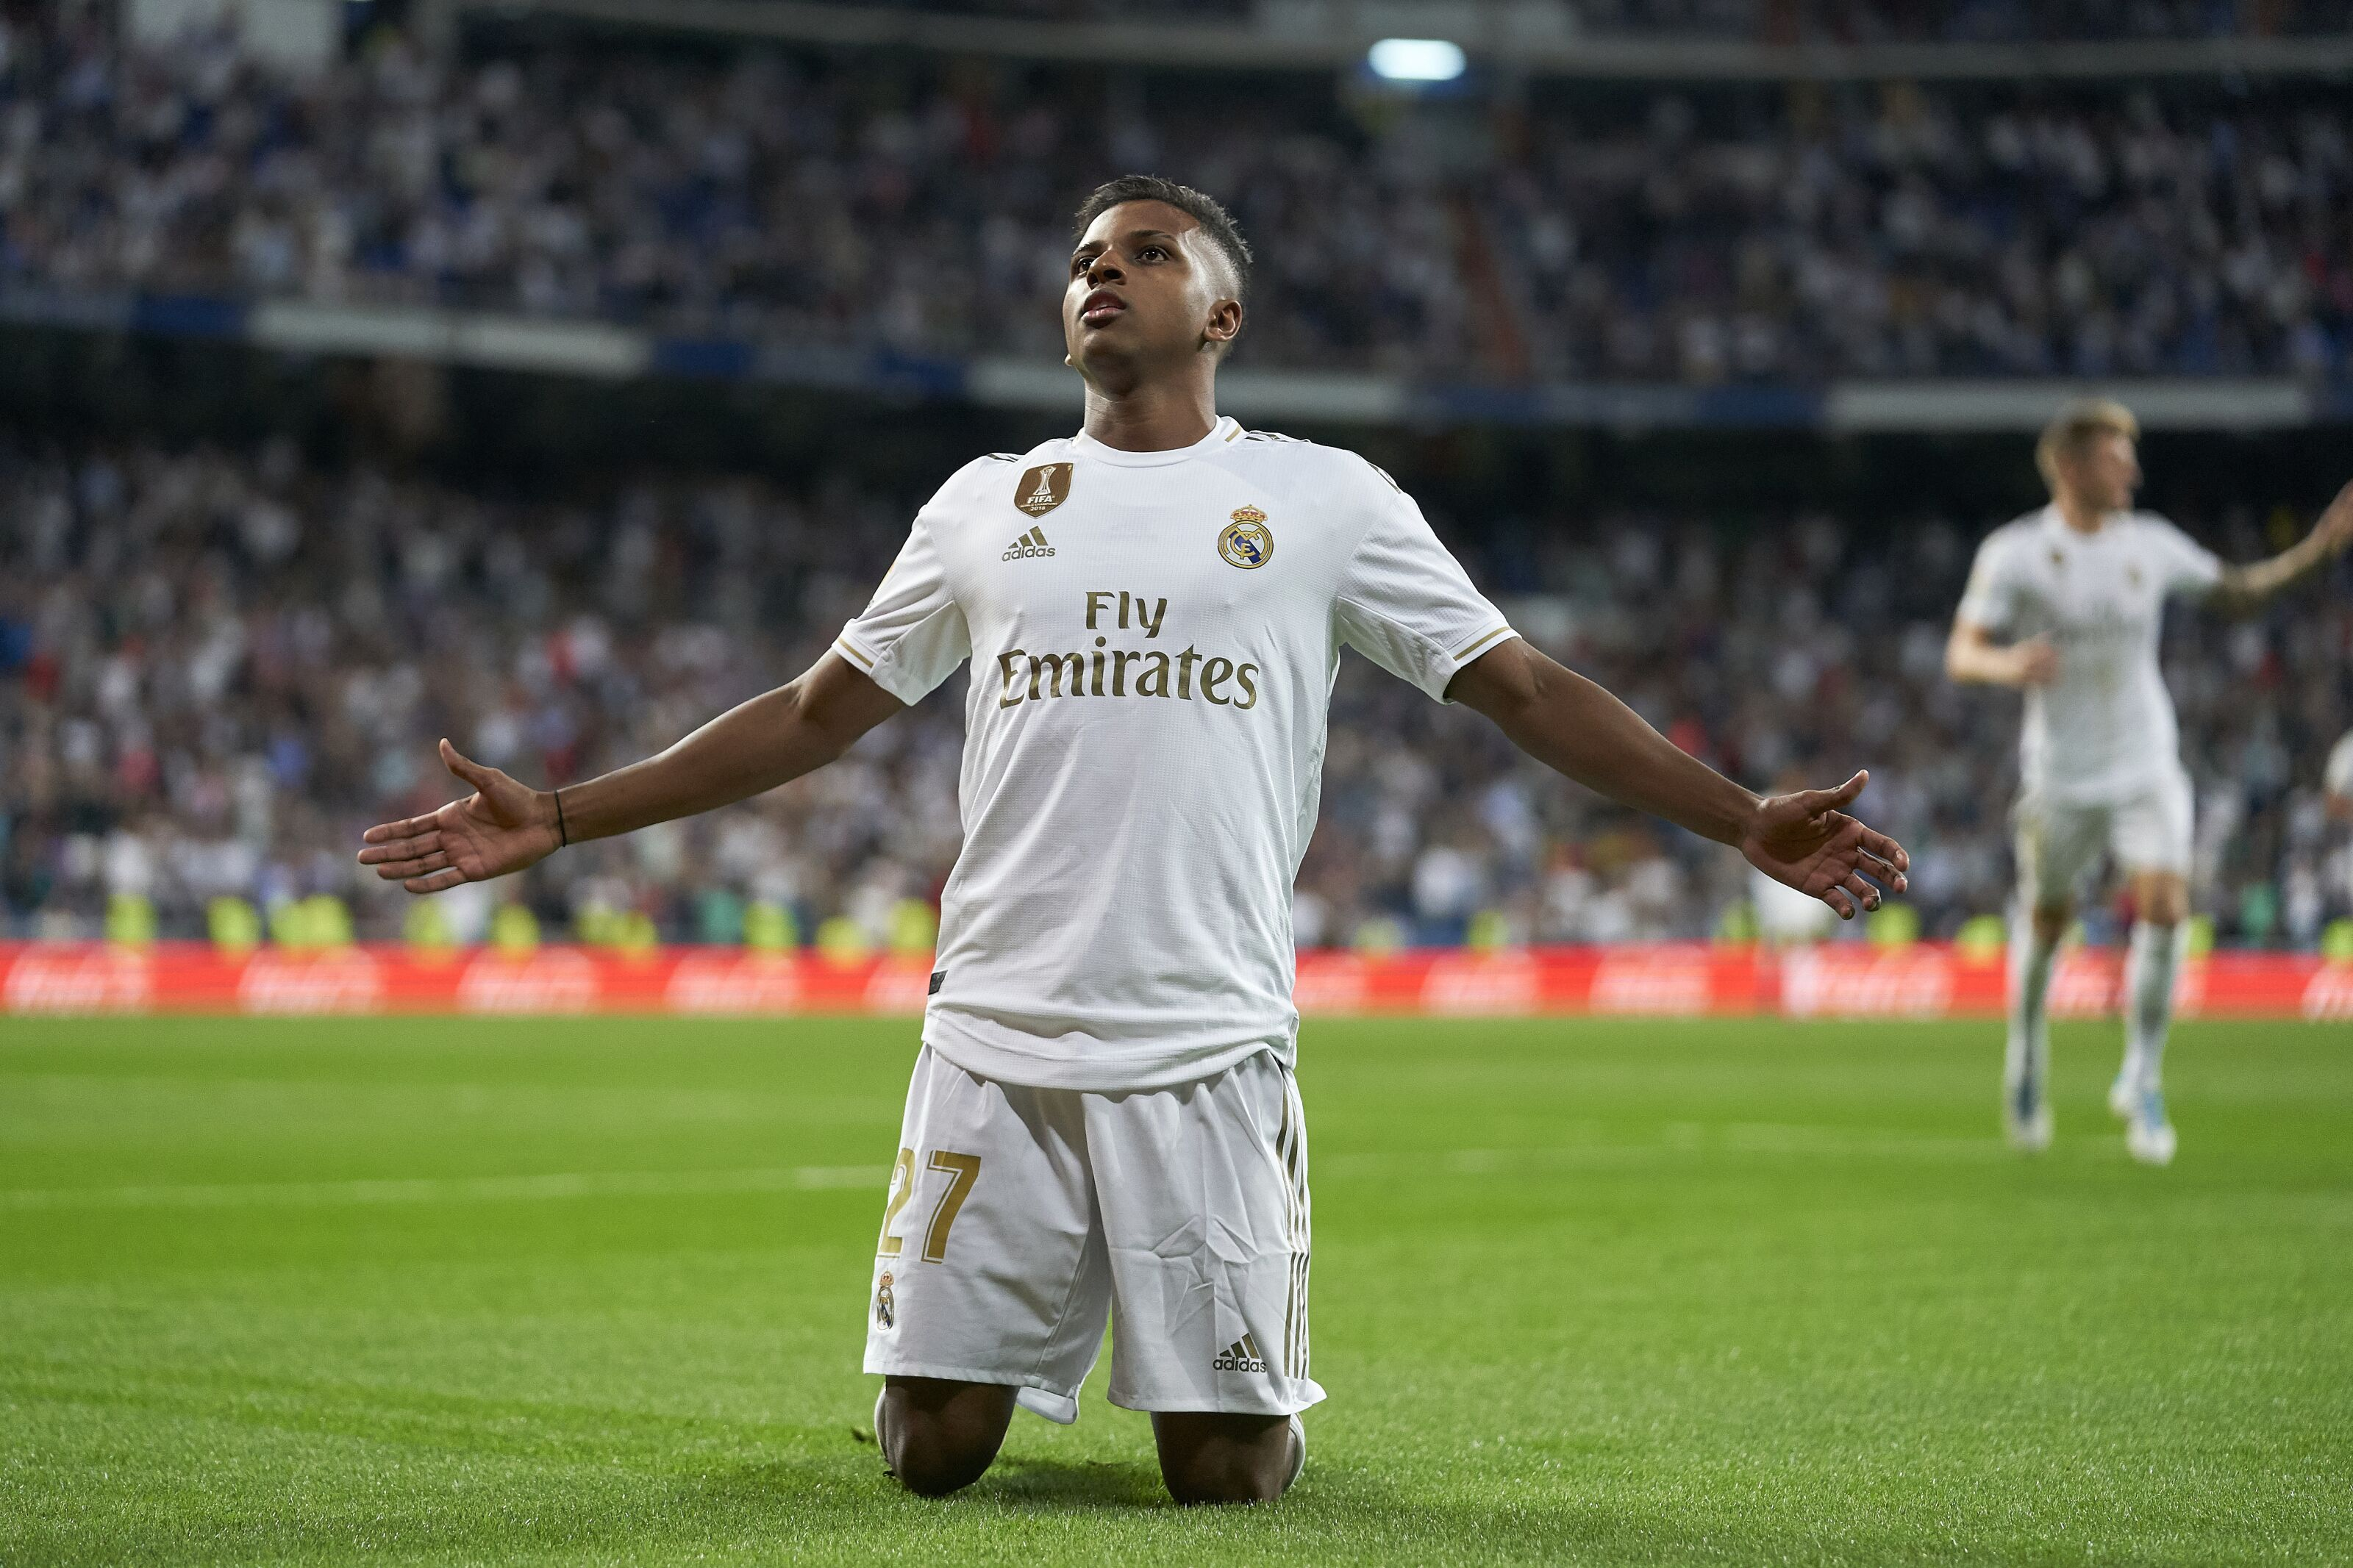 Real Madrid: Setting expectations for Rodrygo in 2019-2020